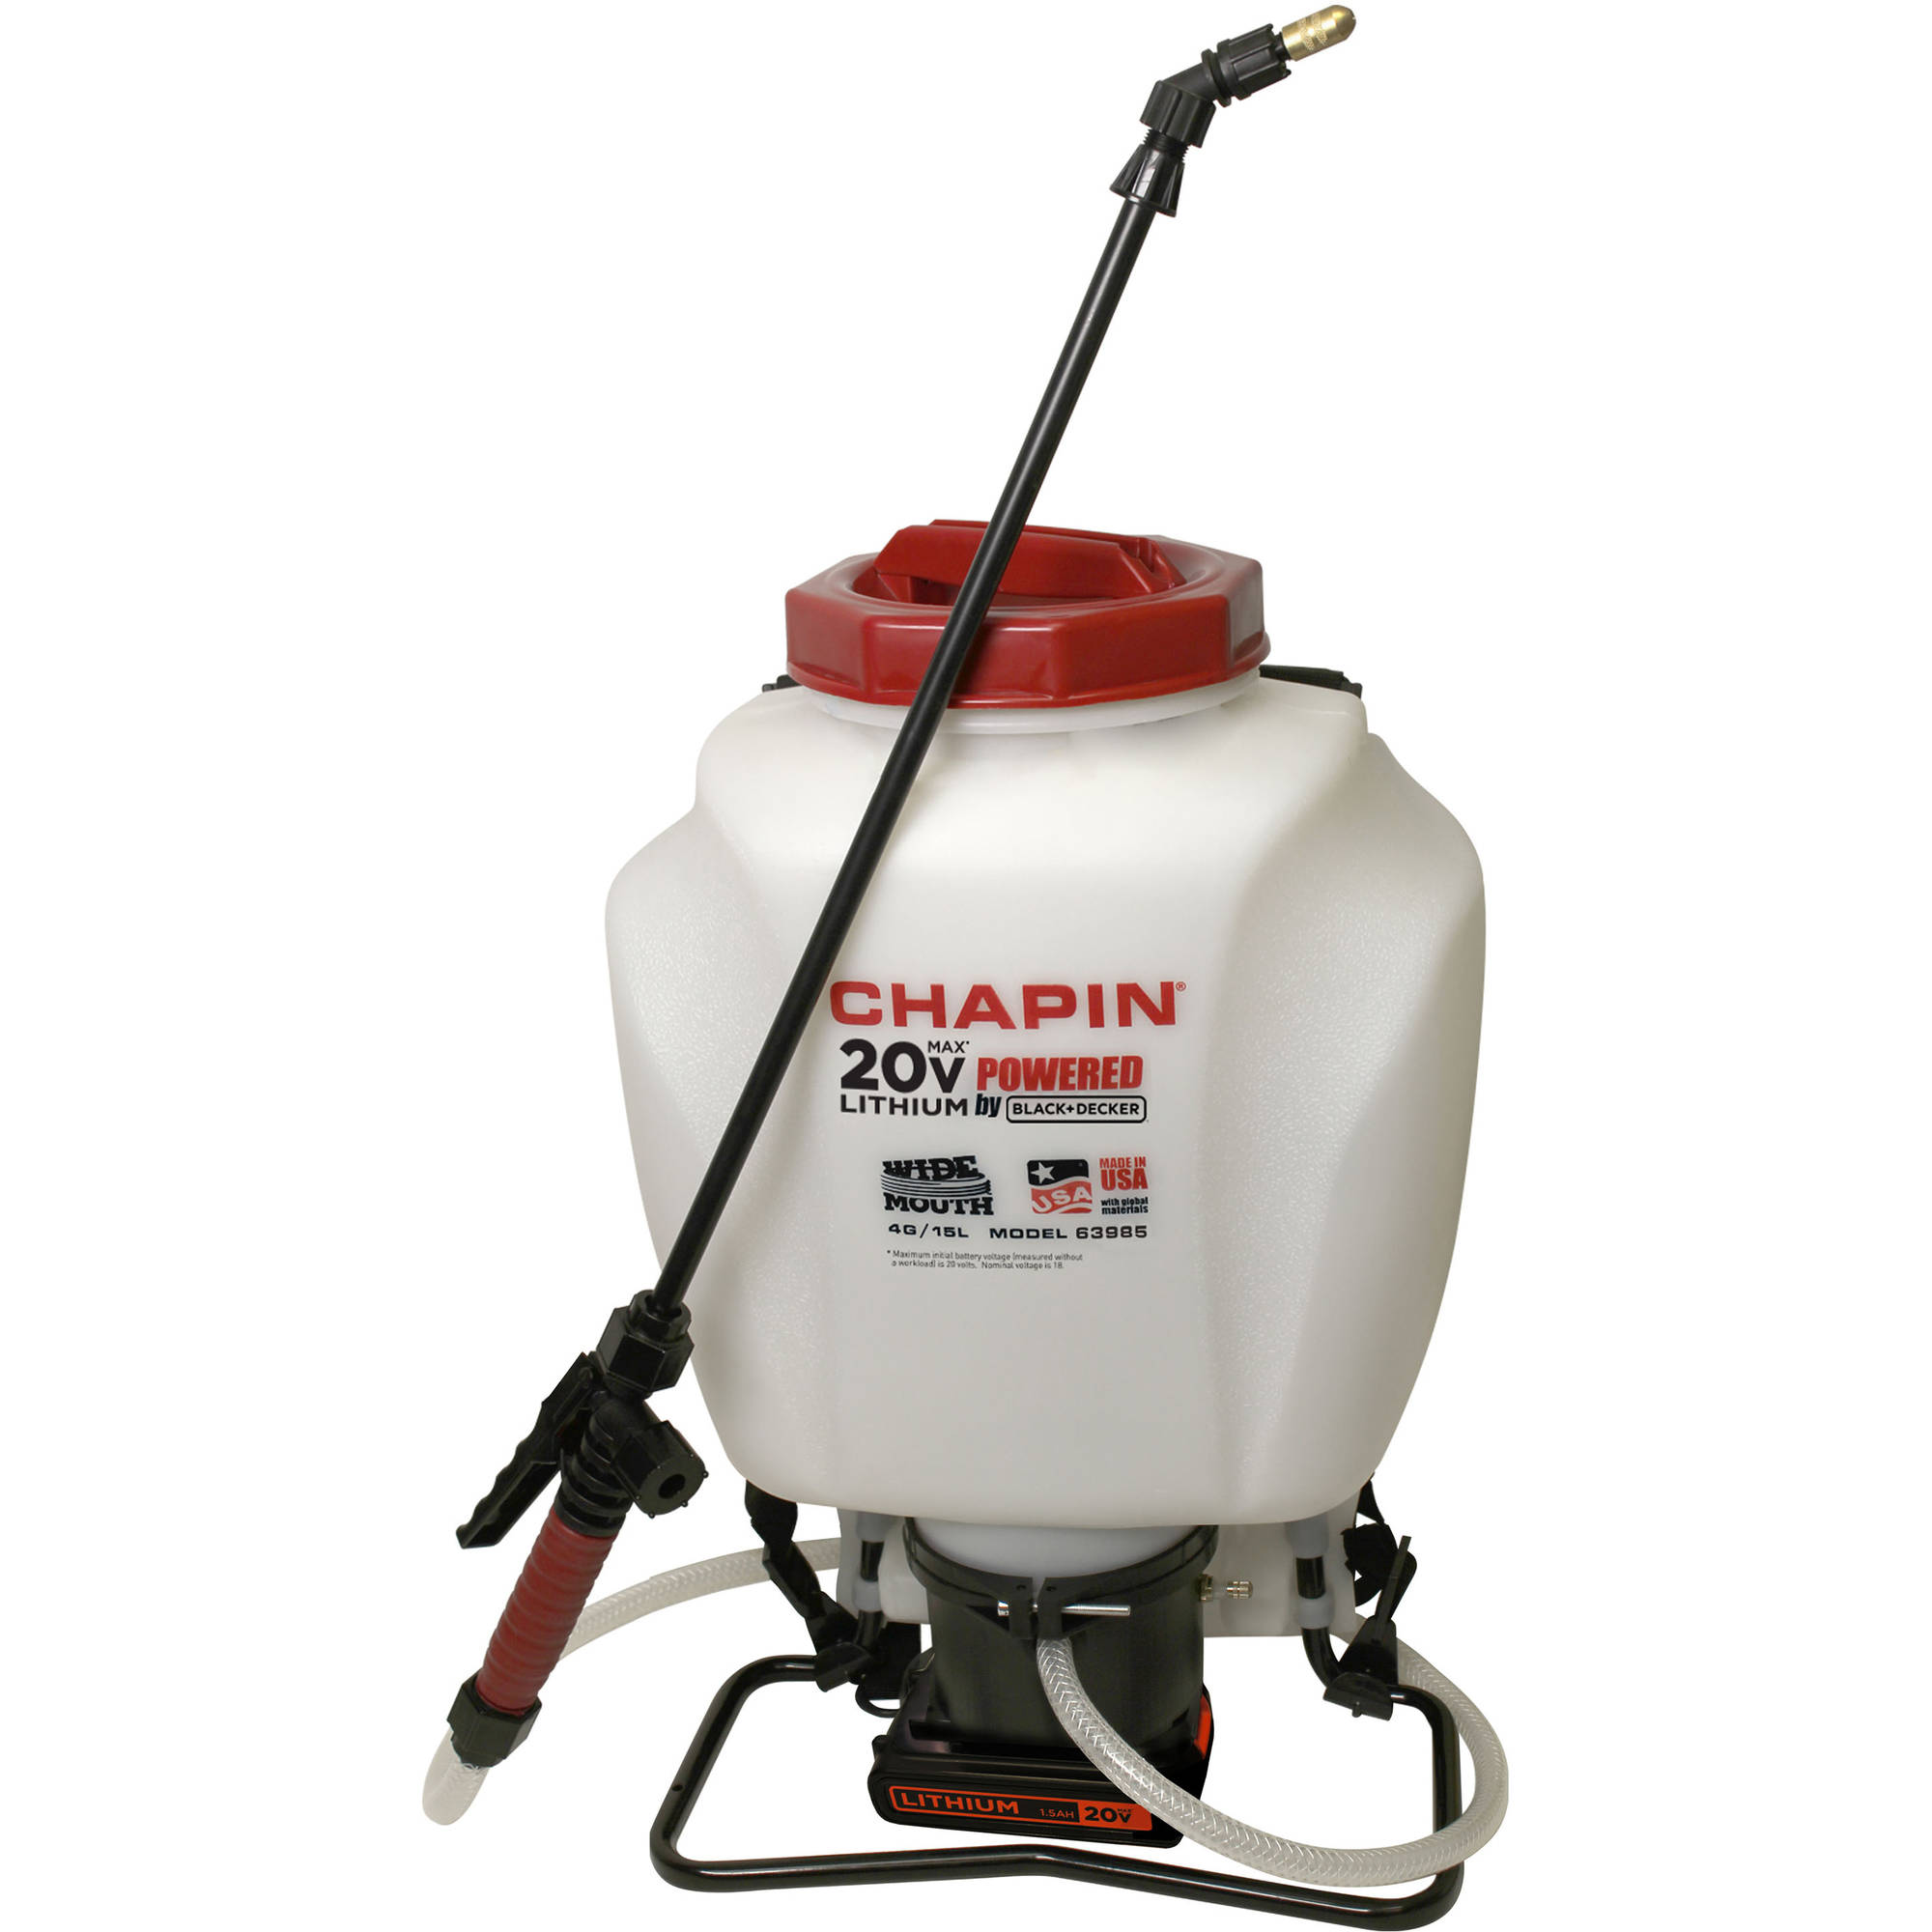 Chapin 63985 4-Gallon Wide Mouth 20V Battery Backpack Sprayer Powered by Black & Decker